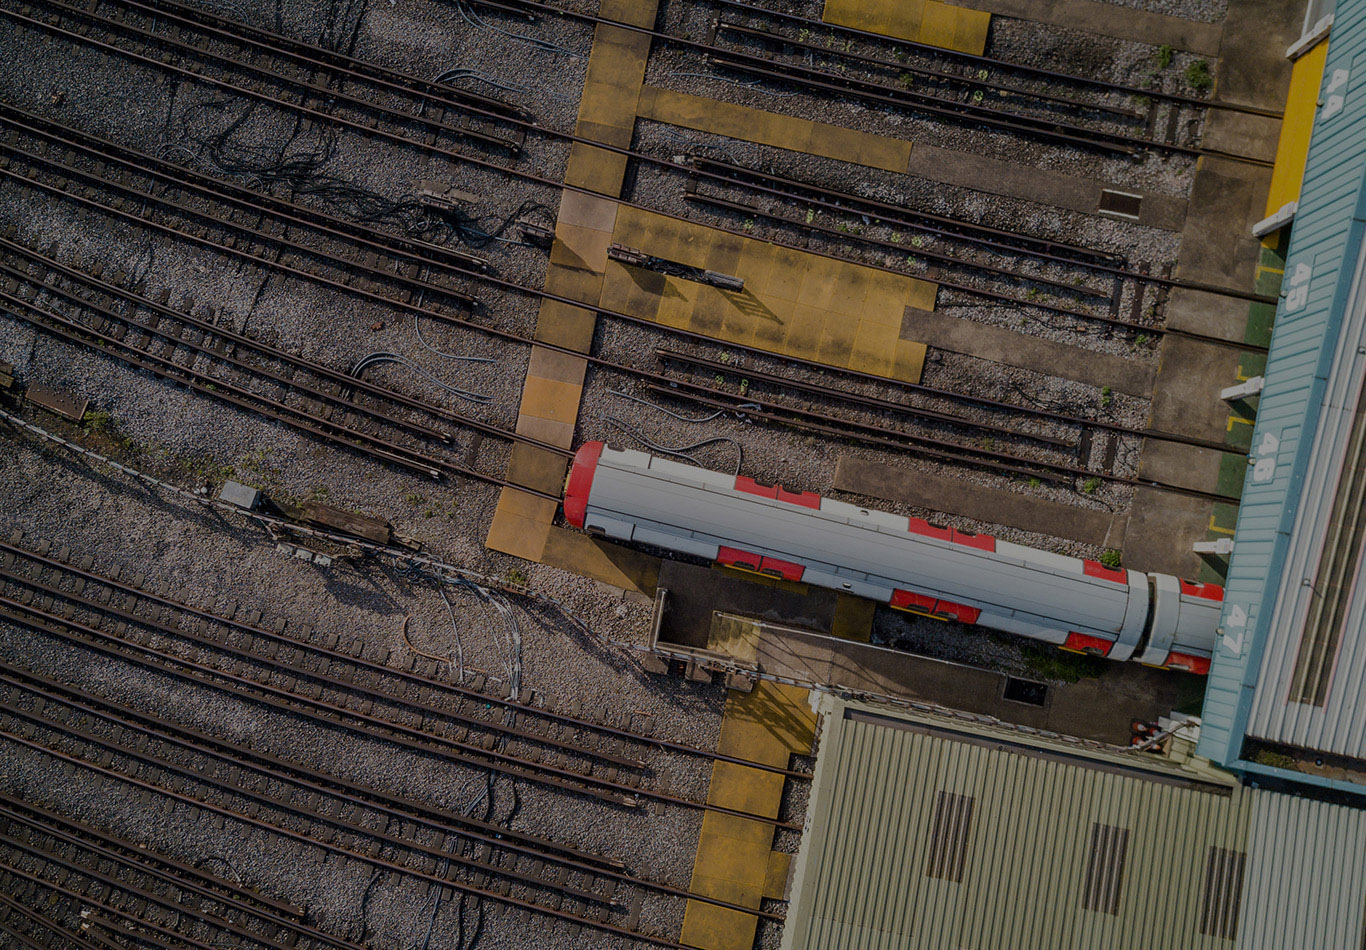 An aerial view of a train depot with one train on the train tracks